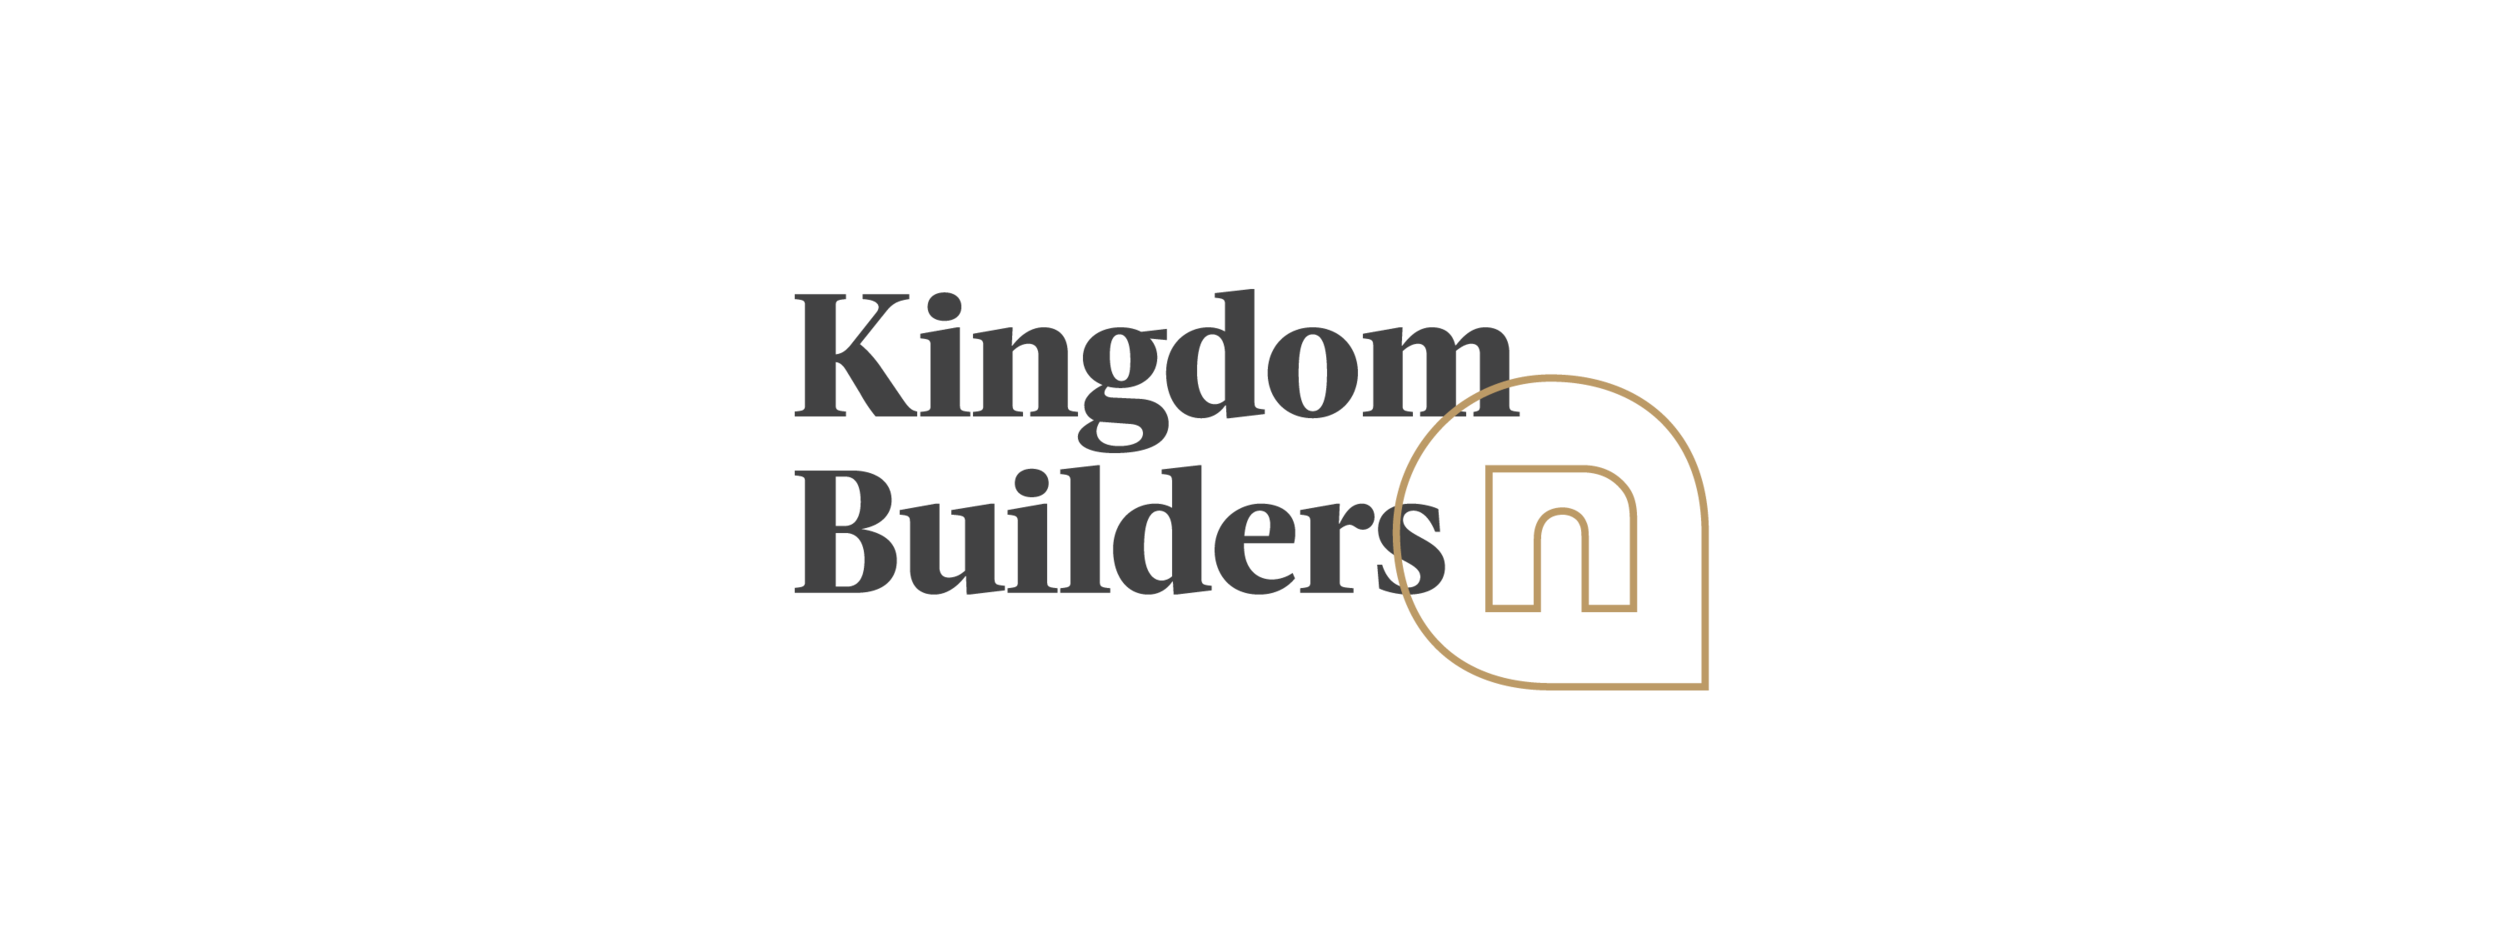 kingdombuilders.1@2x.png